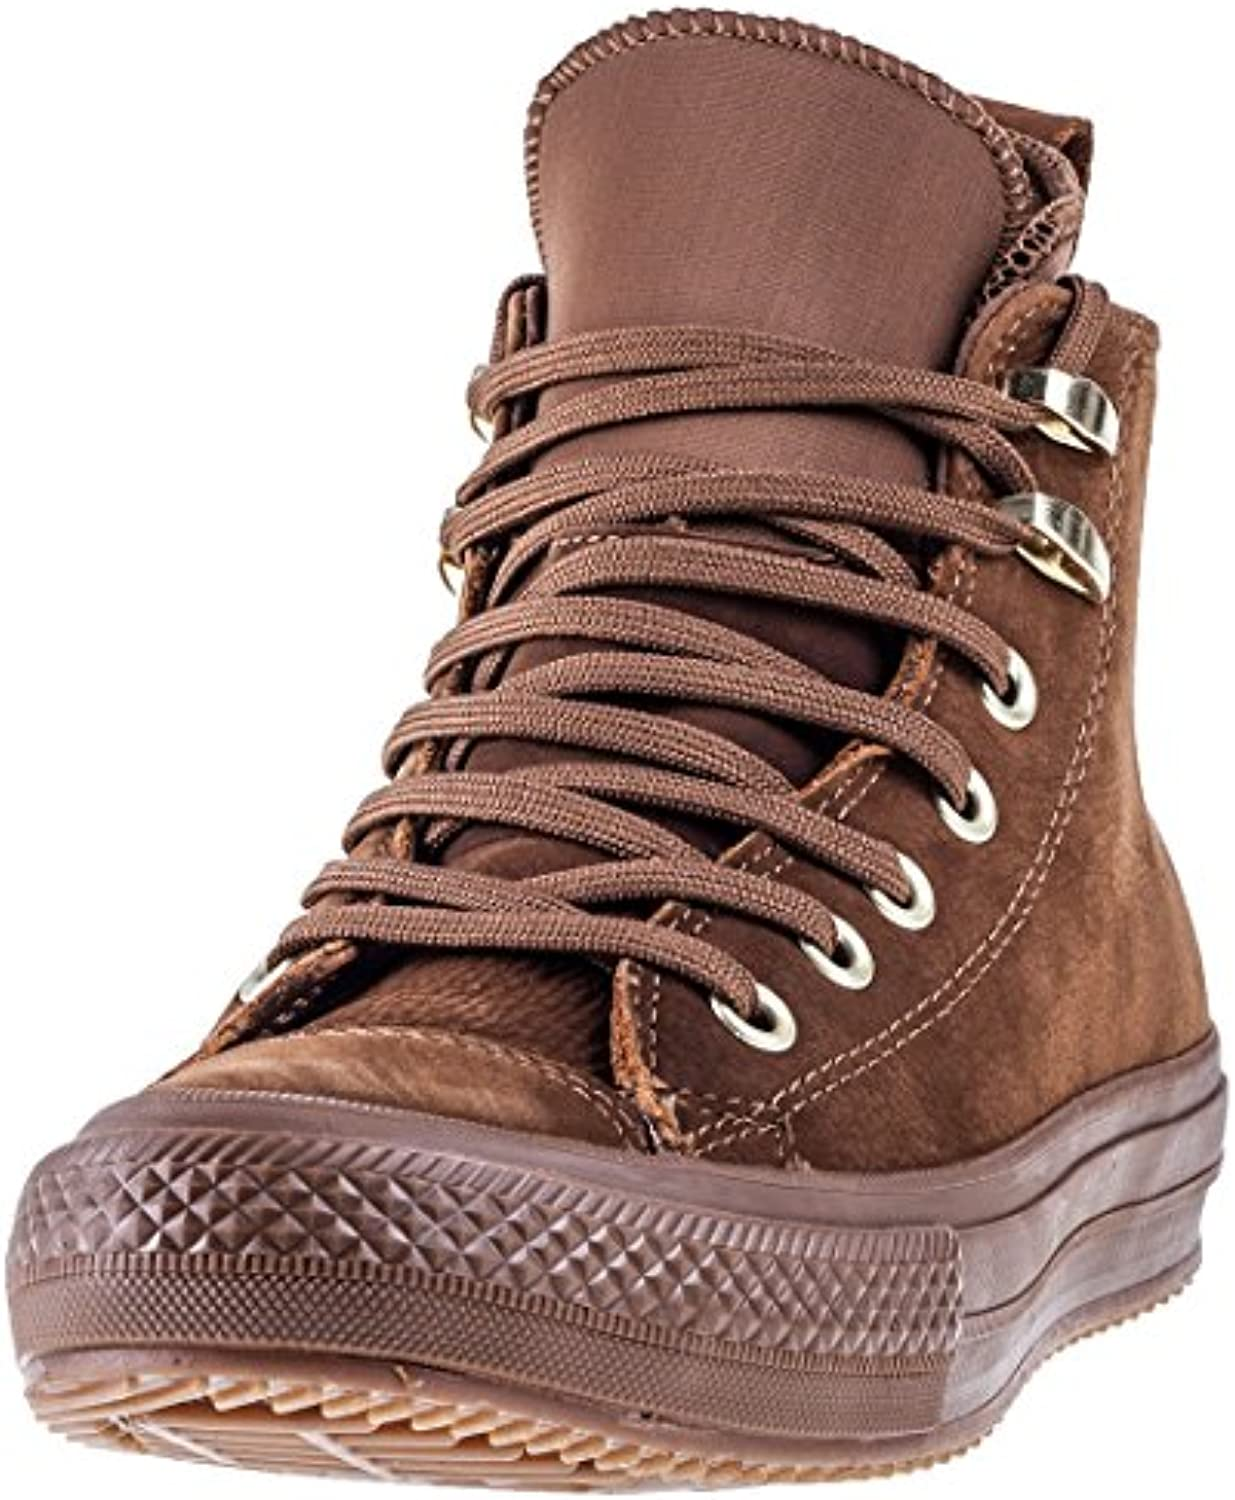 Converse Womens Chuck Taylor All Star Waterproof Boot Hi Nubuck Boots